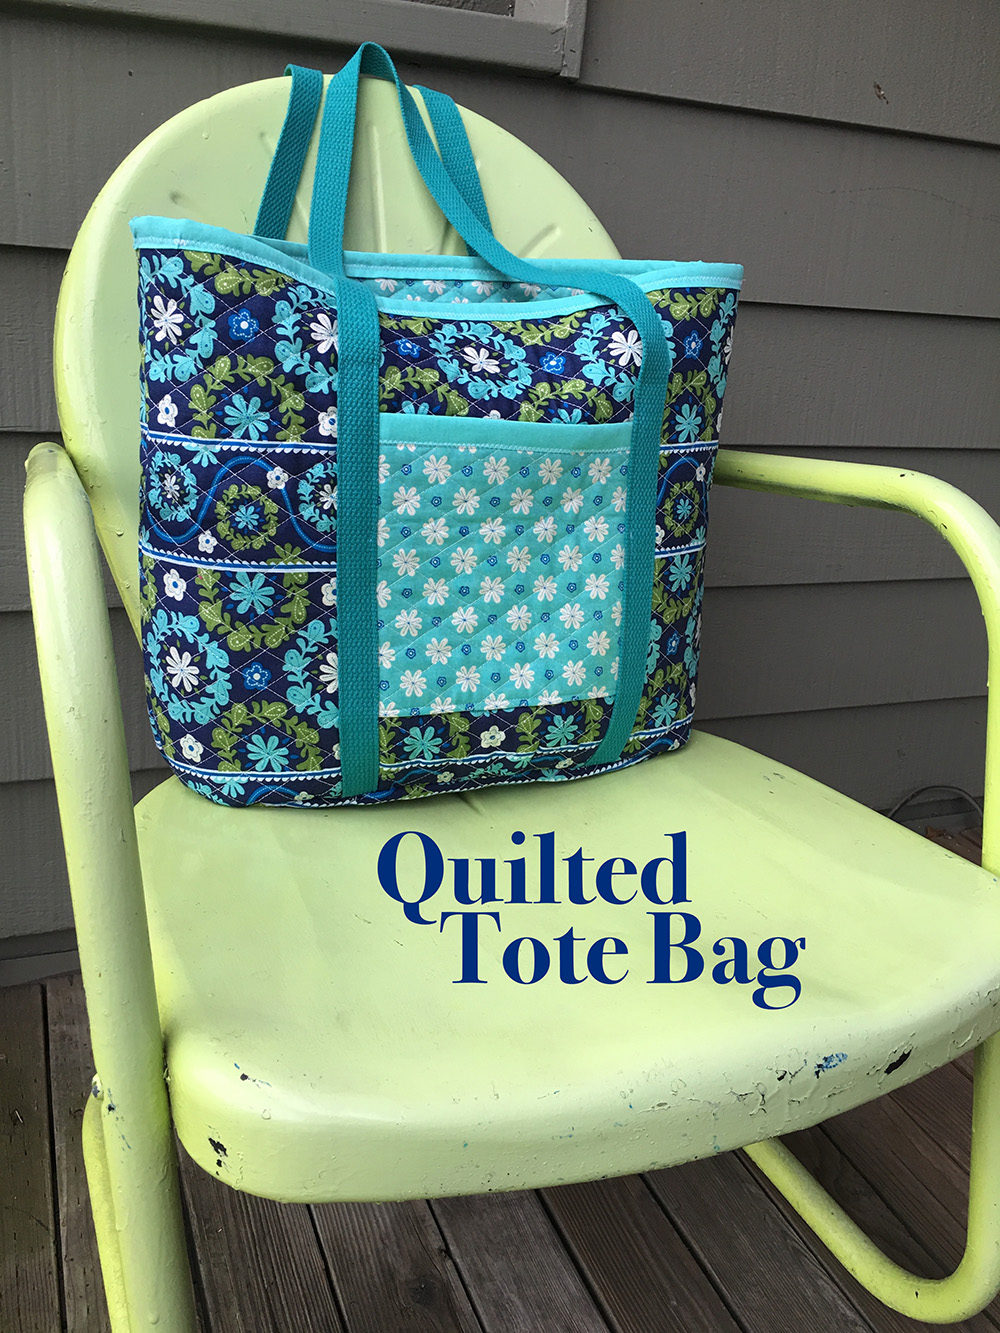 Sew a Quilted Fabric Tote Bag | National Sewing Circle : quilt tote bag - Adamdwight.com